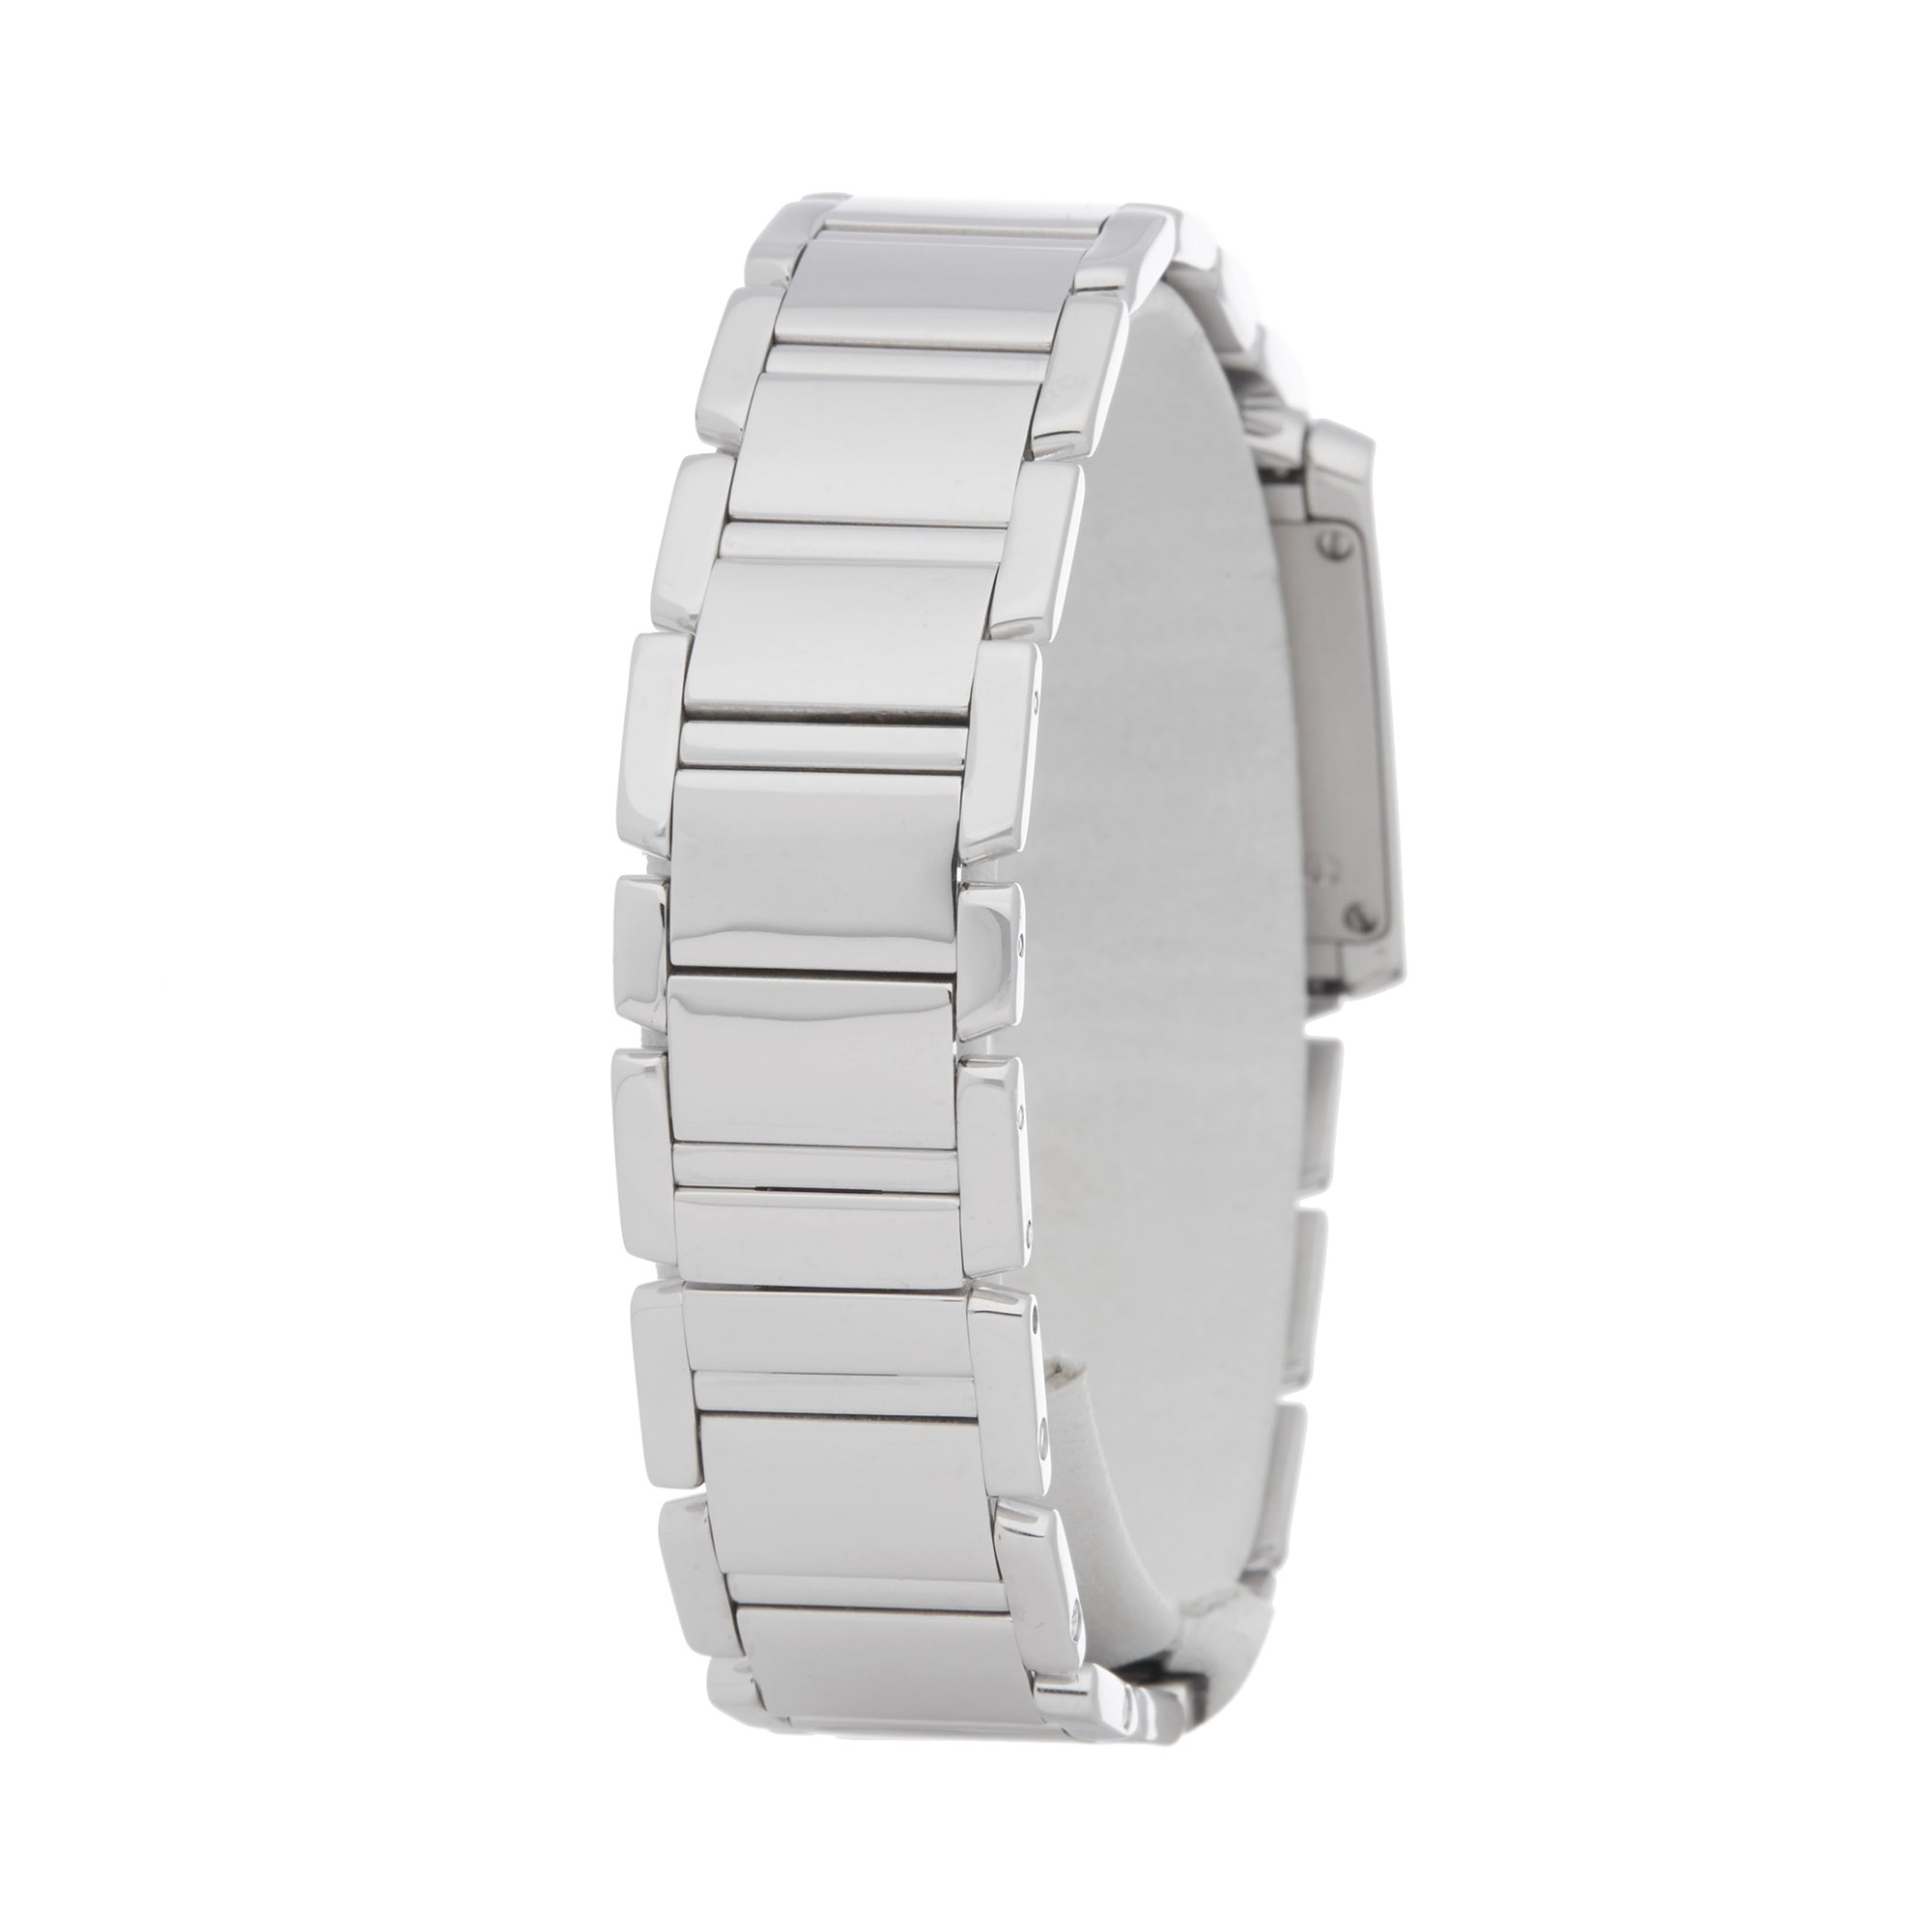 Cartier Tank 18k White Gold W5001253 or 2403